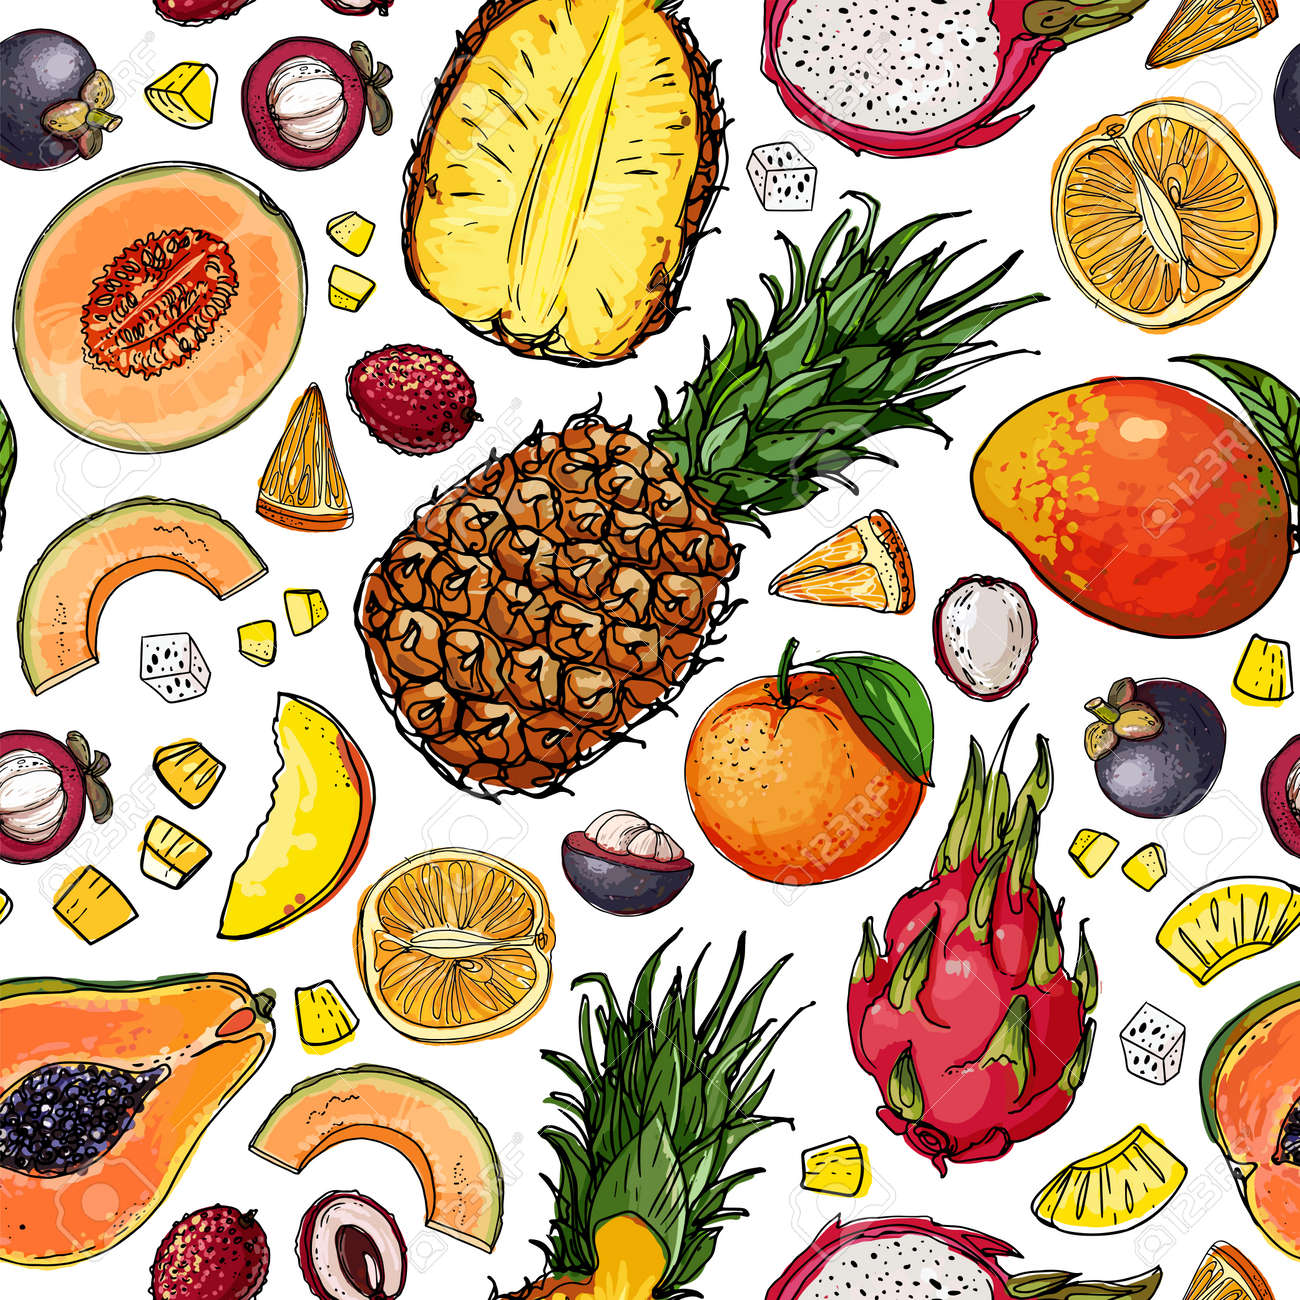 Seampless pattern vector color food. Exotic fruits and berries - 171951928